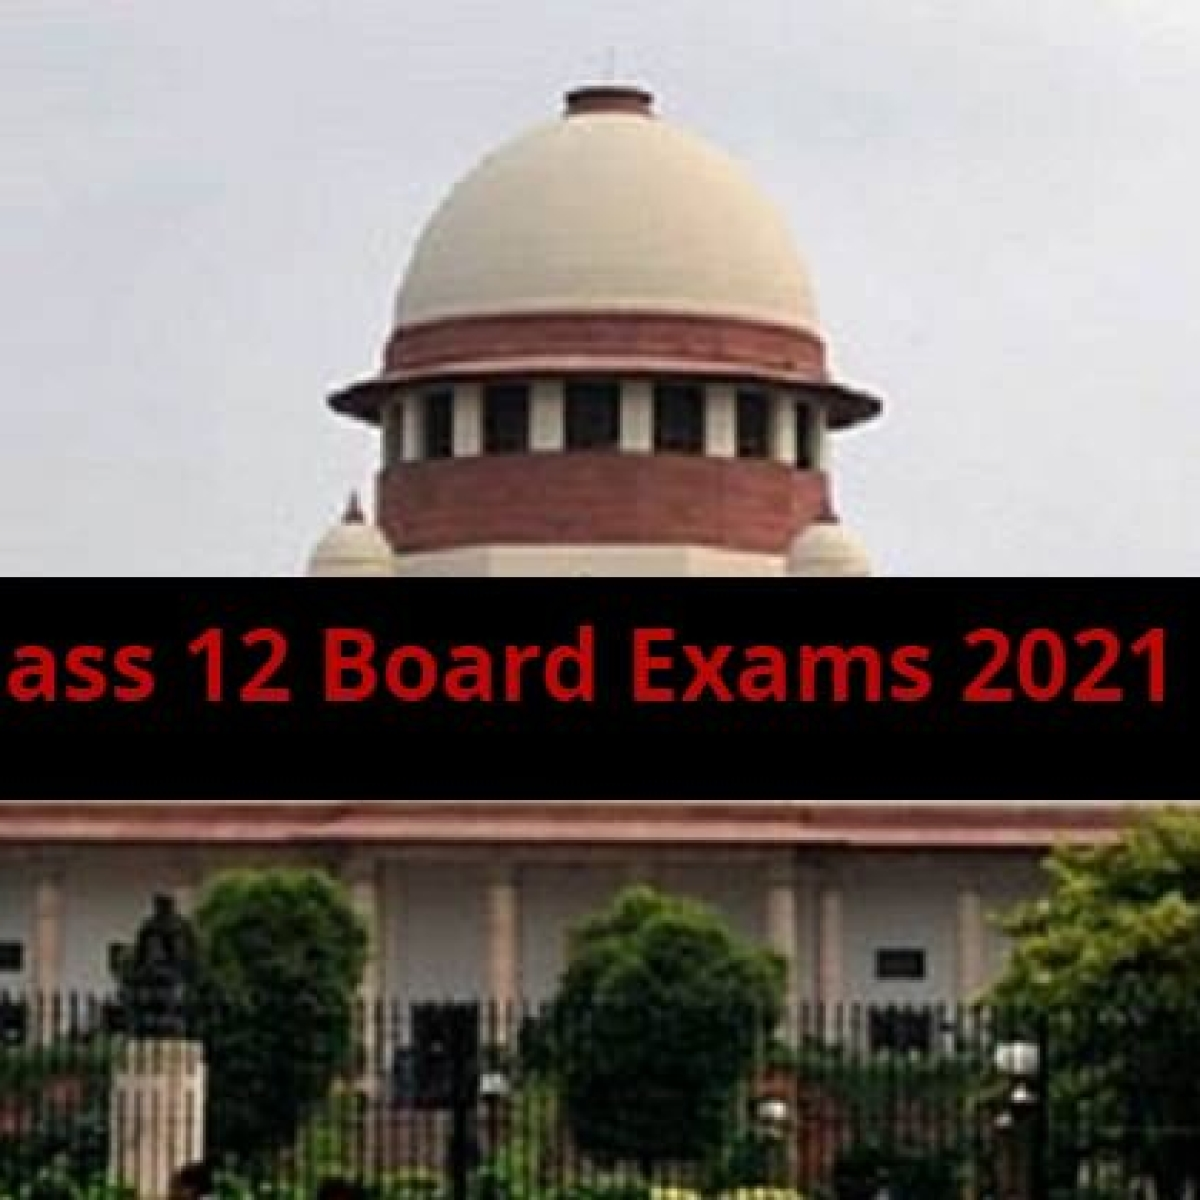 Attention students! CBSE submits its evaluation criteria for Class 12 board exams before Supreme Court - Here's how your marks will be calculated